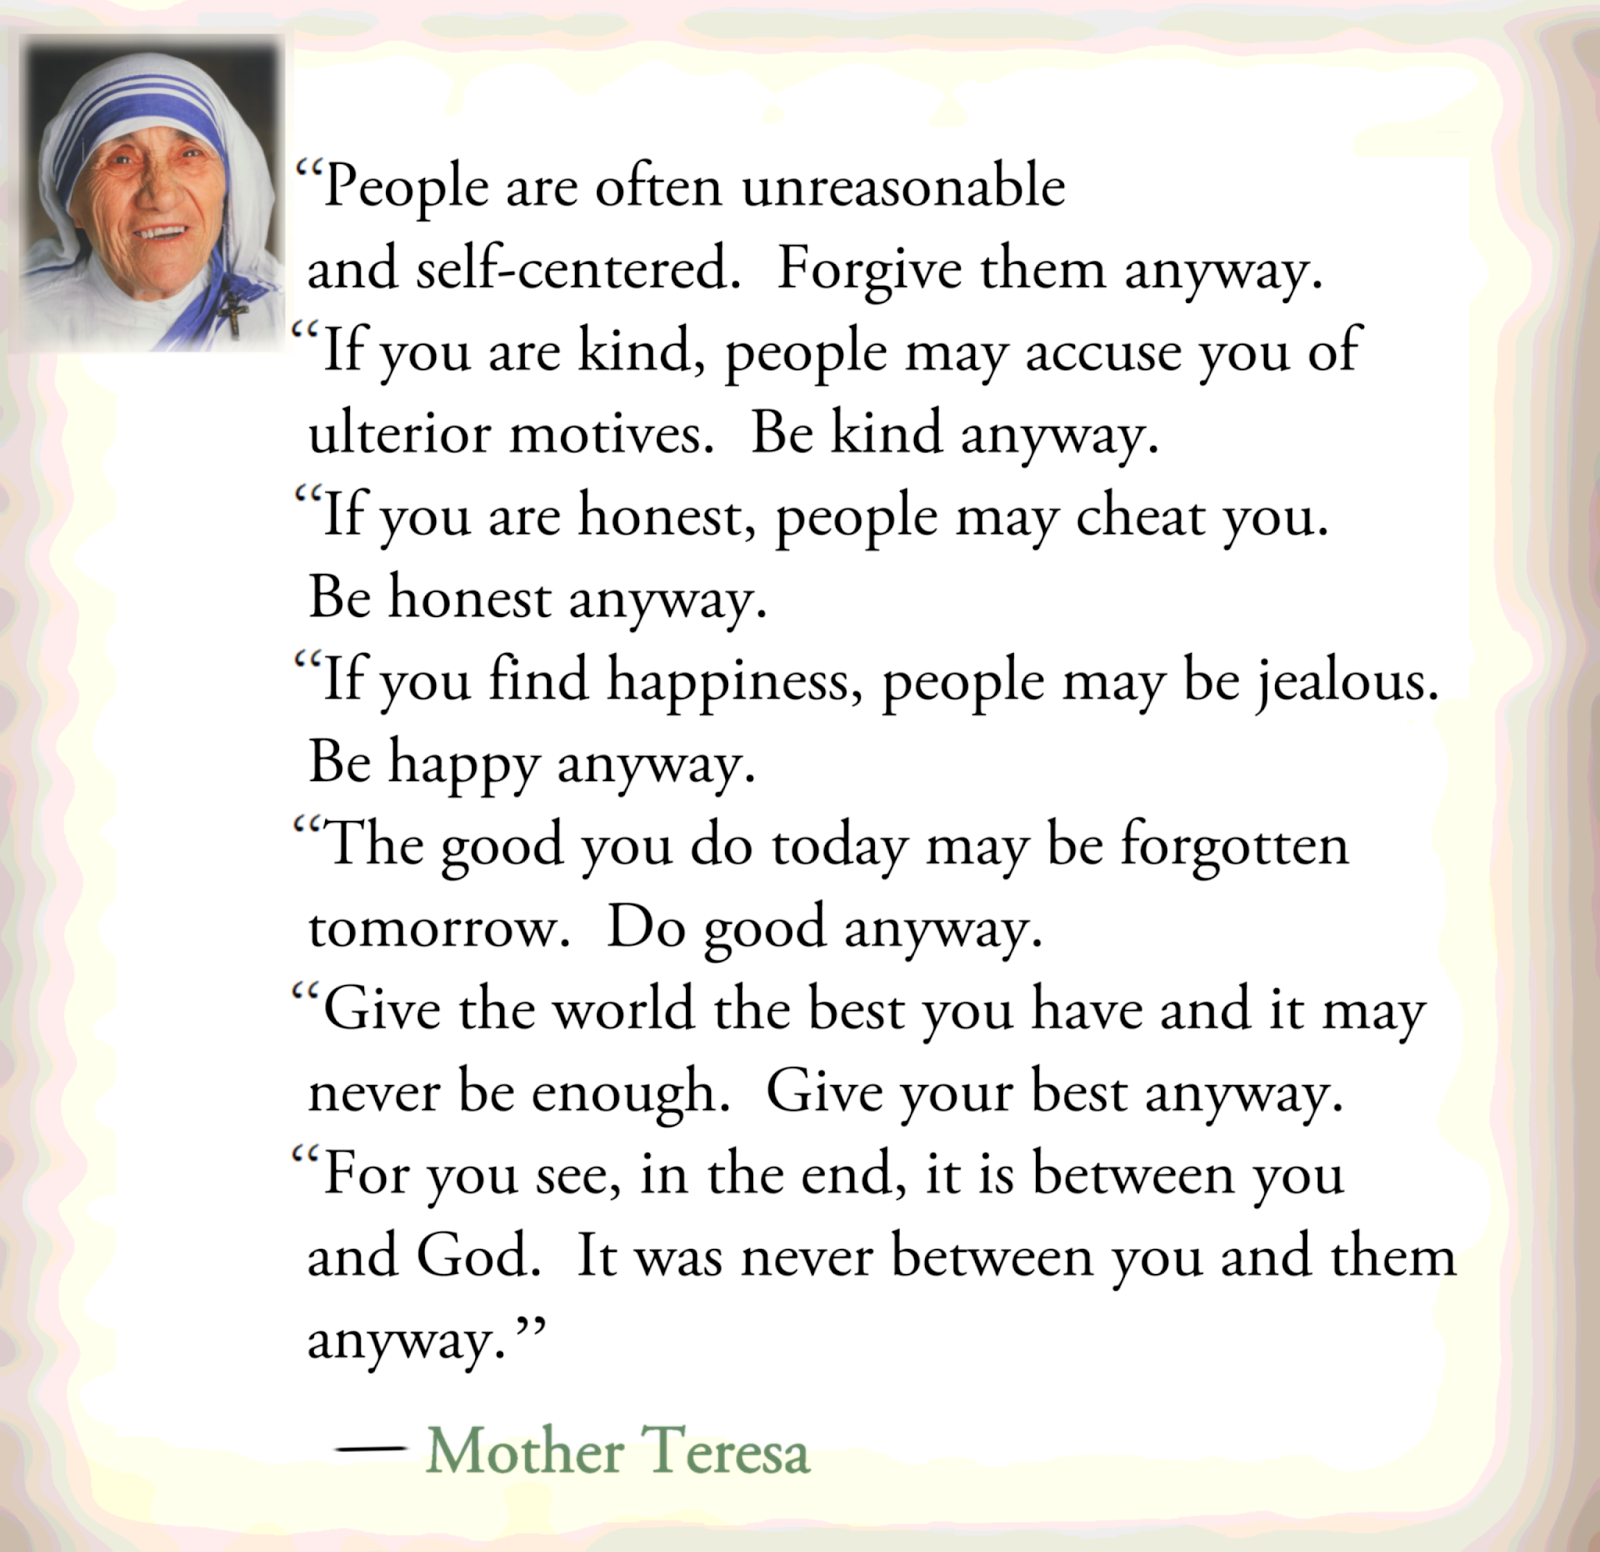 Mother Teresa Quotes People Are Often: I Could Be TOTALLY Wrong, But ...: It Was Never Between